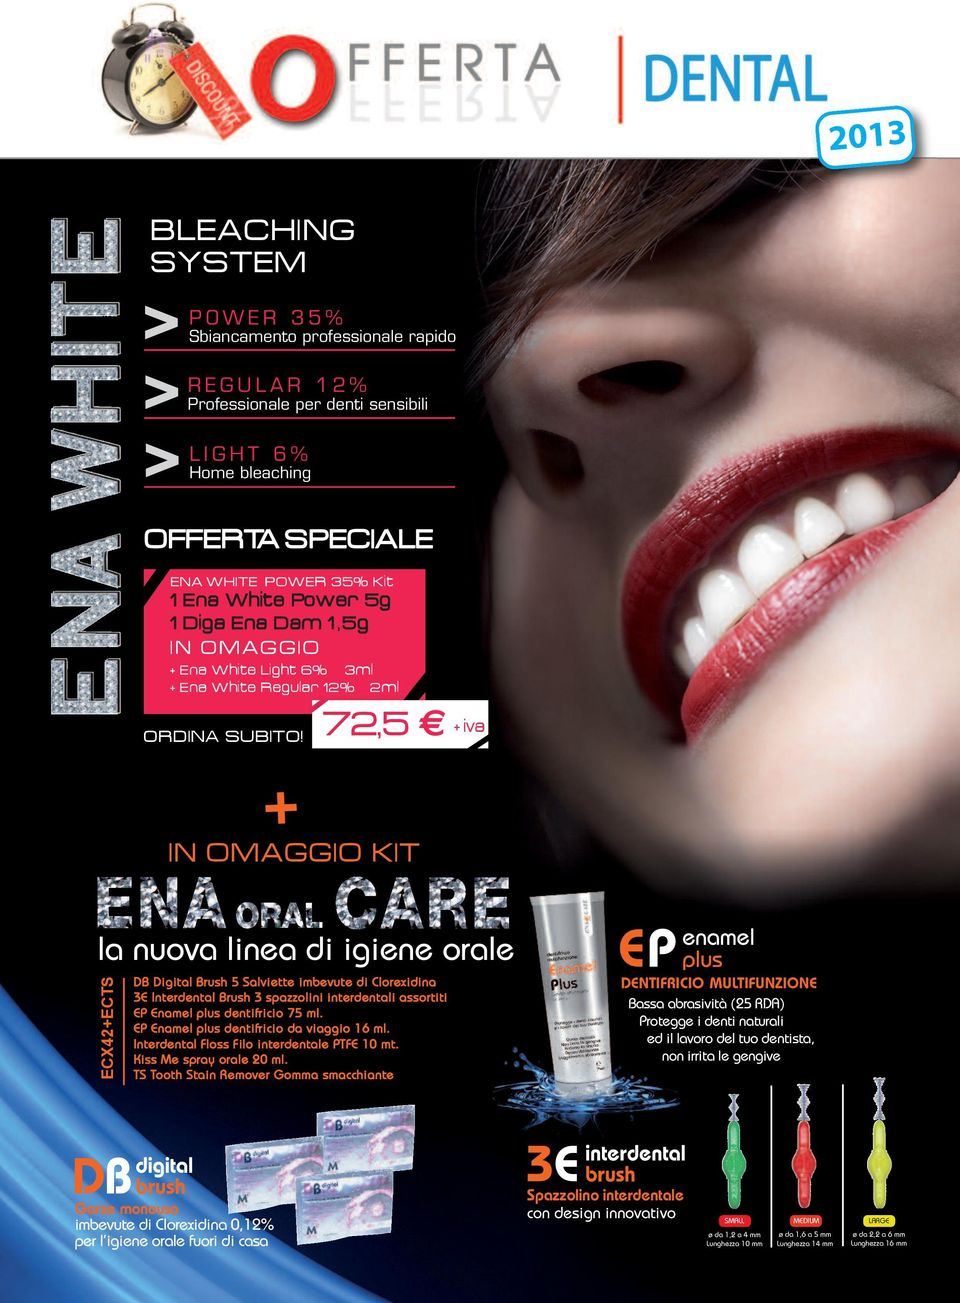 + 72,5 + iva in OmaggiO Kit la nuova linea di igiene orale ECX42+ECTS DB Digital Brush 5 Salviette imbevute di Clorexidina 3E Interdental Brush 3 spazzolini interdentali assortiti EP Enamel plus